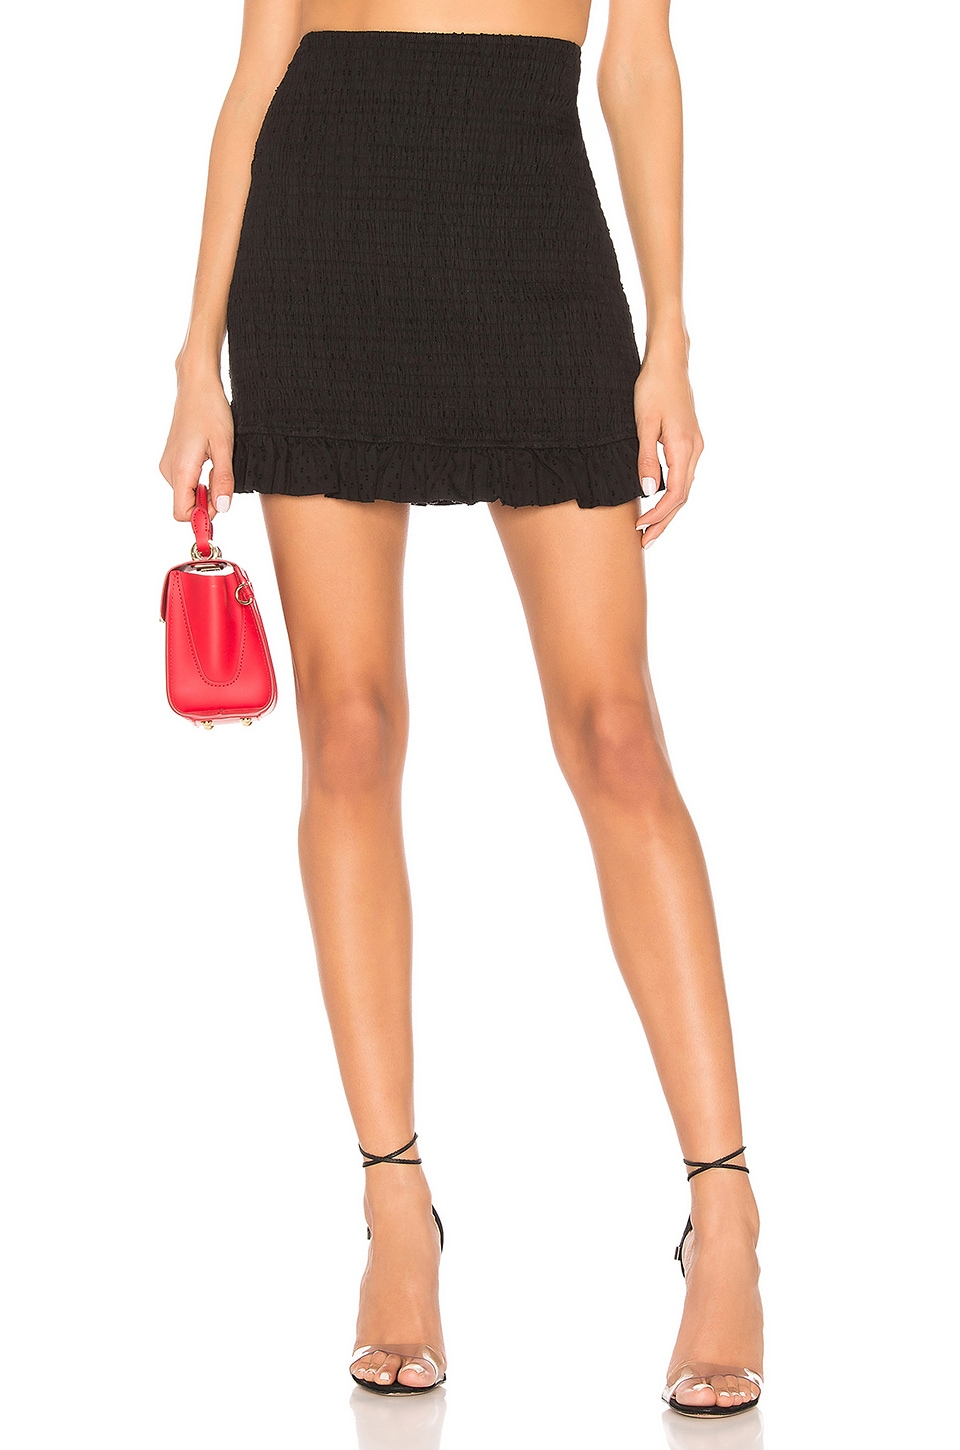 Privacy Please Woodbridge Skirt in Black